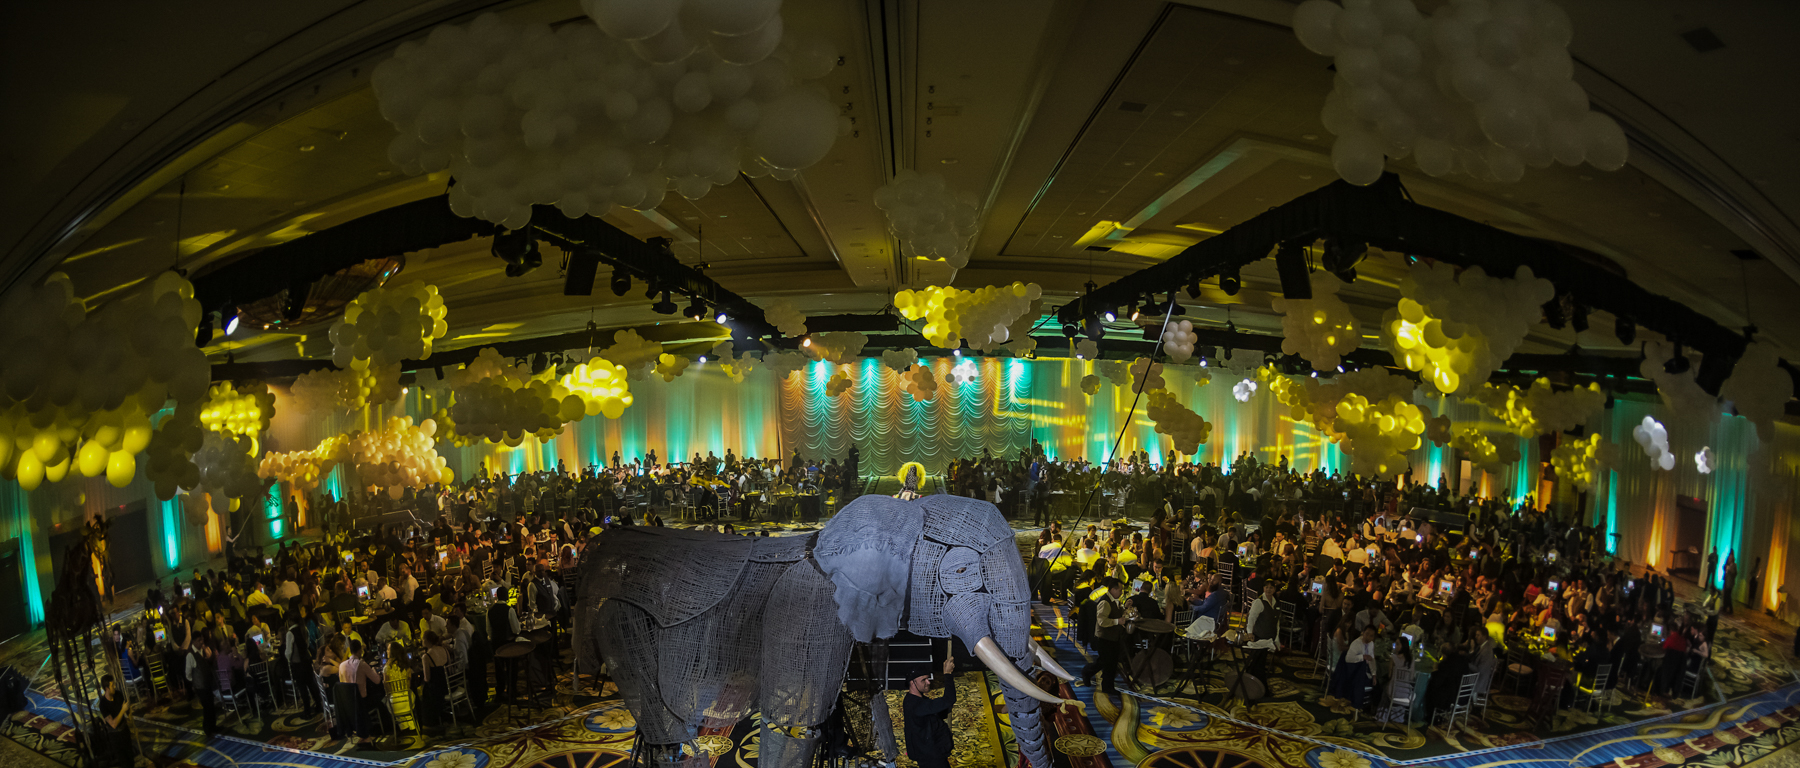 Dinner in 5 countries in under two hours: an Unbridled event management story